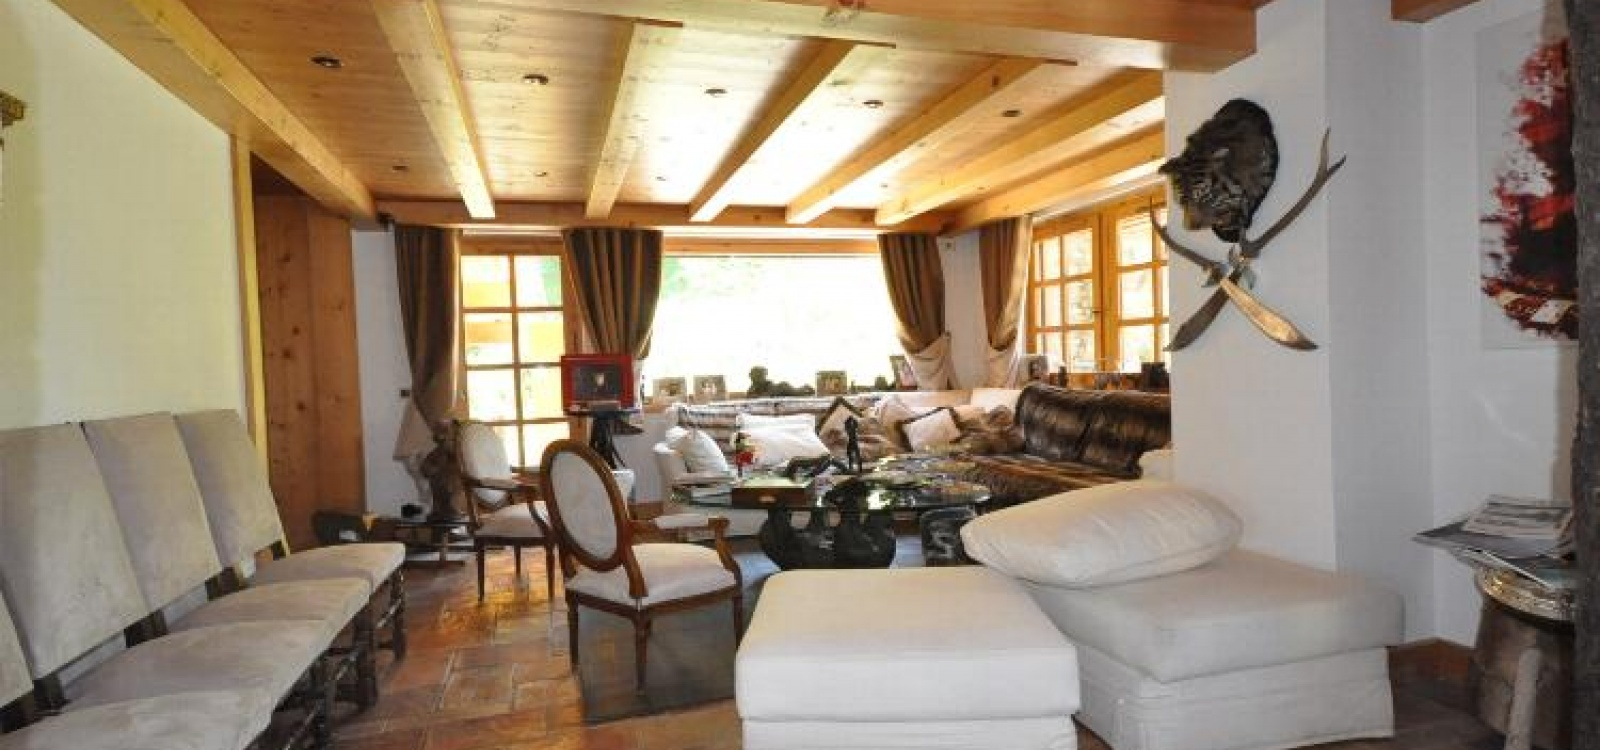 Megève,Haute-Savoie,France,3 BathroomsBathrooms,Chalet,1006